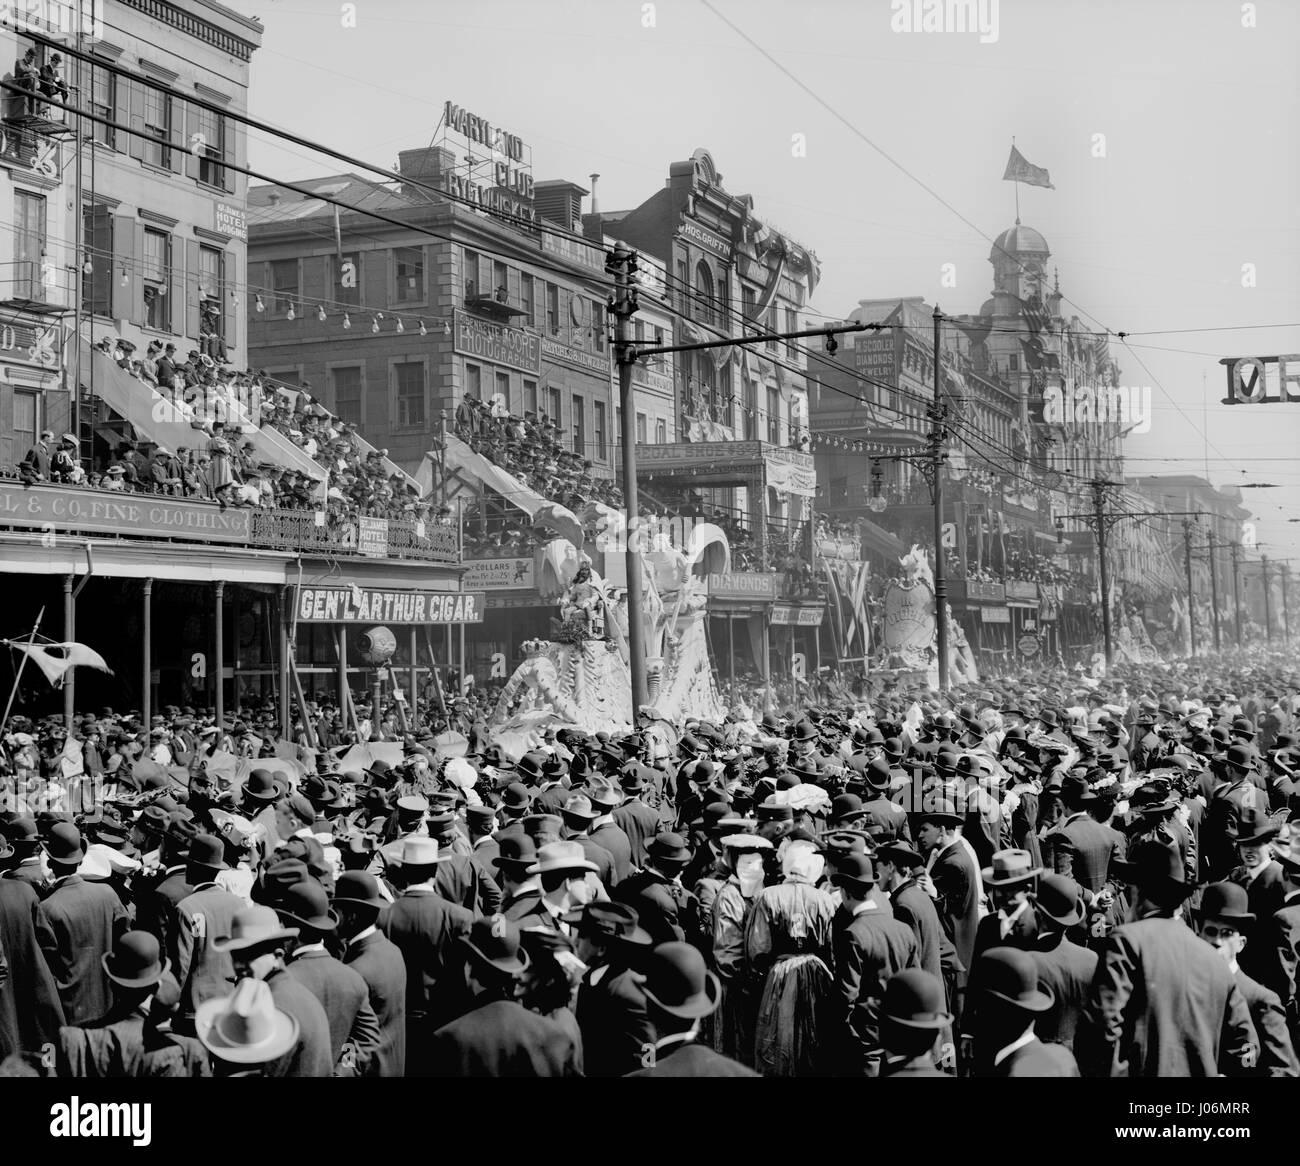 Rot Pageant, Karneval Parade, New Orleans, Louisiana, USA, Detroit Publishing Company, 1890 Stockbild